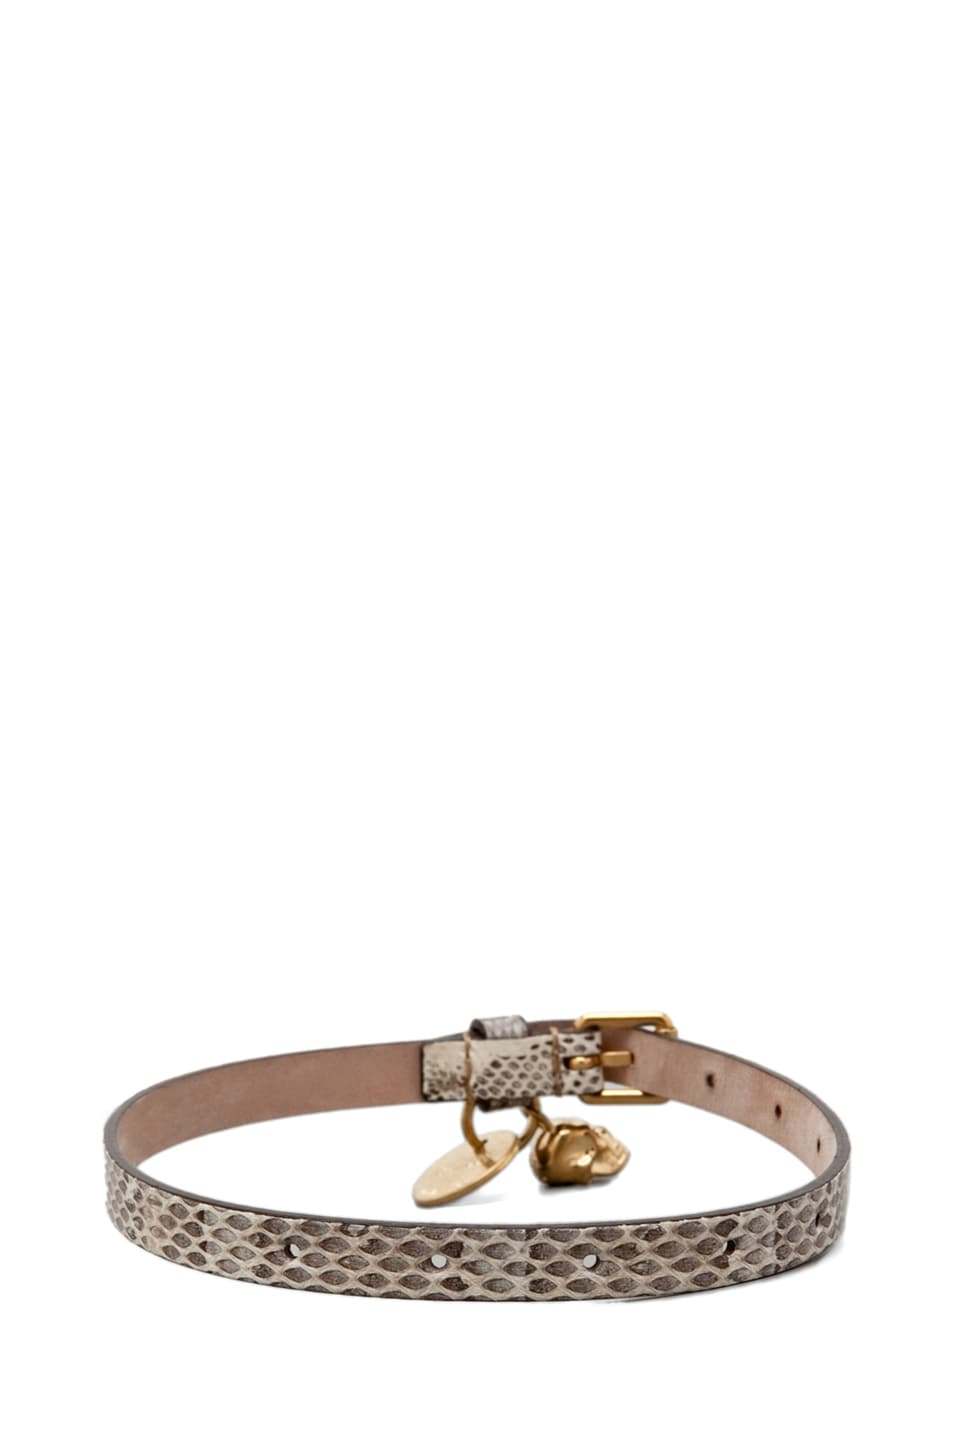 Image 3 of Alexander McQueen Skull Charm Leather Wrap Bracelet in Tonal Ayers